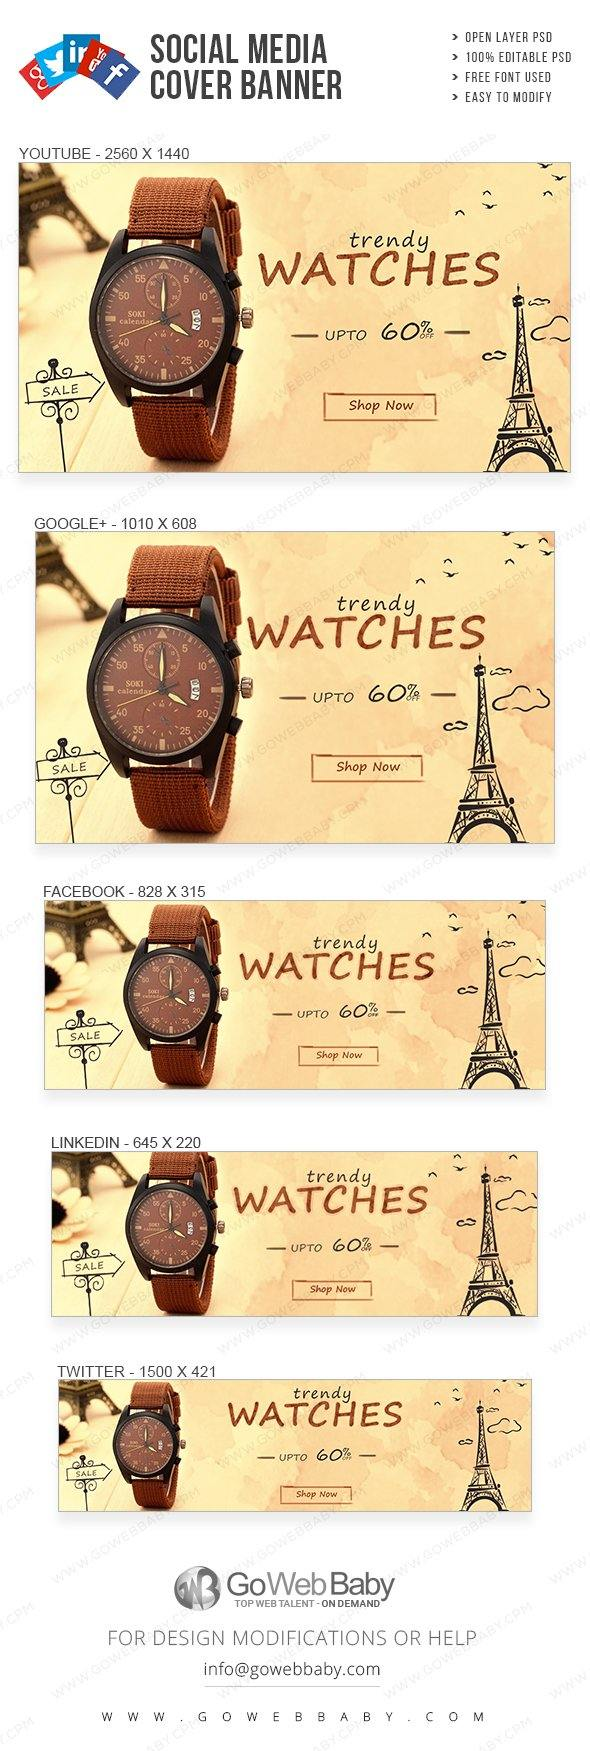 Social Media Cover Banner - Trendy Watch Collection For Website Marketing